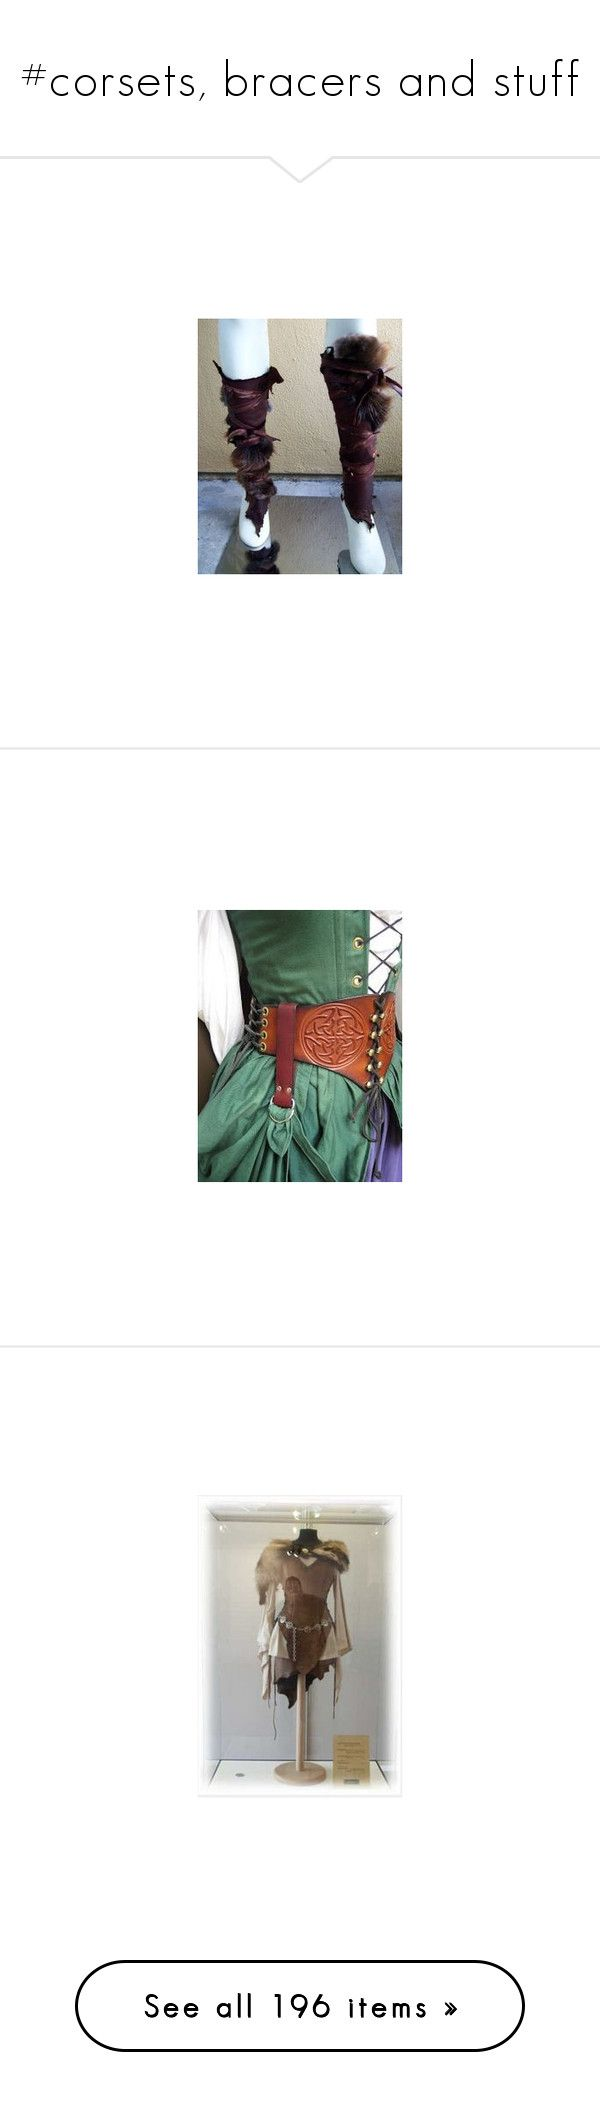 """#corsets, bracers and stuff"" by ronnie-555 on Polyvore featuring disco costumes, party halloween costumes, ladies costumes, party costumes, disco party costume, outerwear, jackets, cropped moto jacket, suede moto jacket and brown cropped jacket"